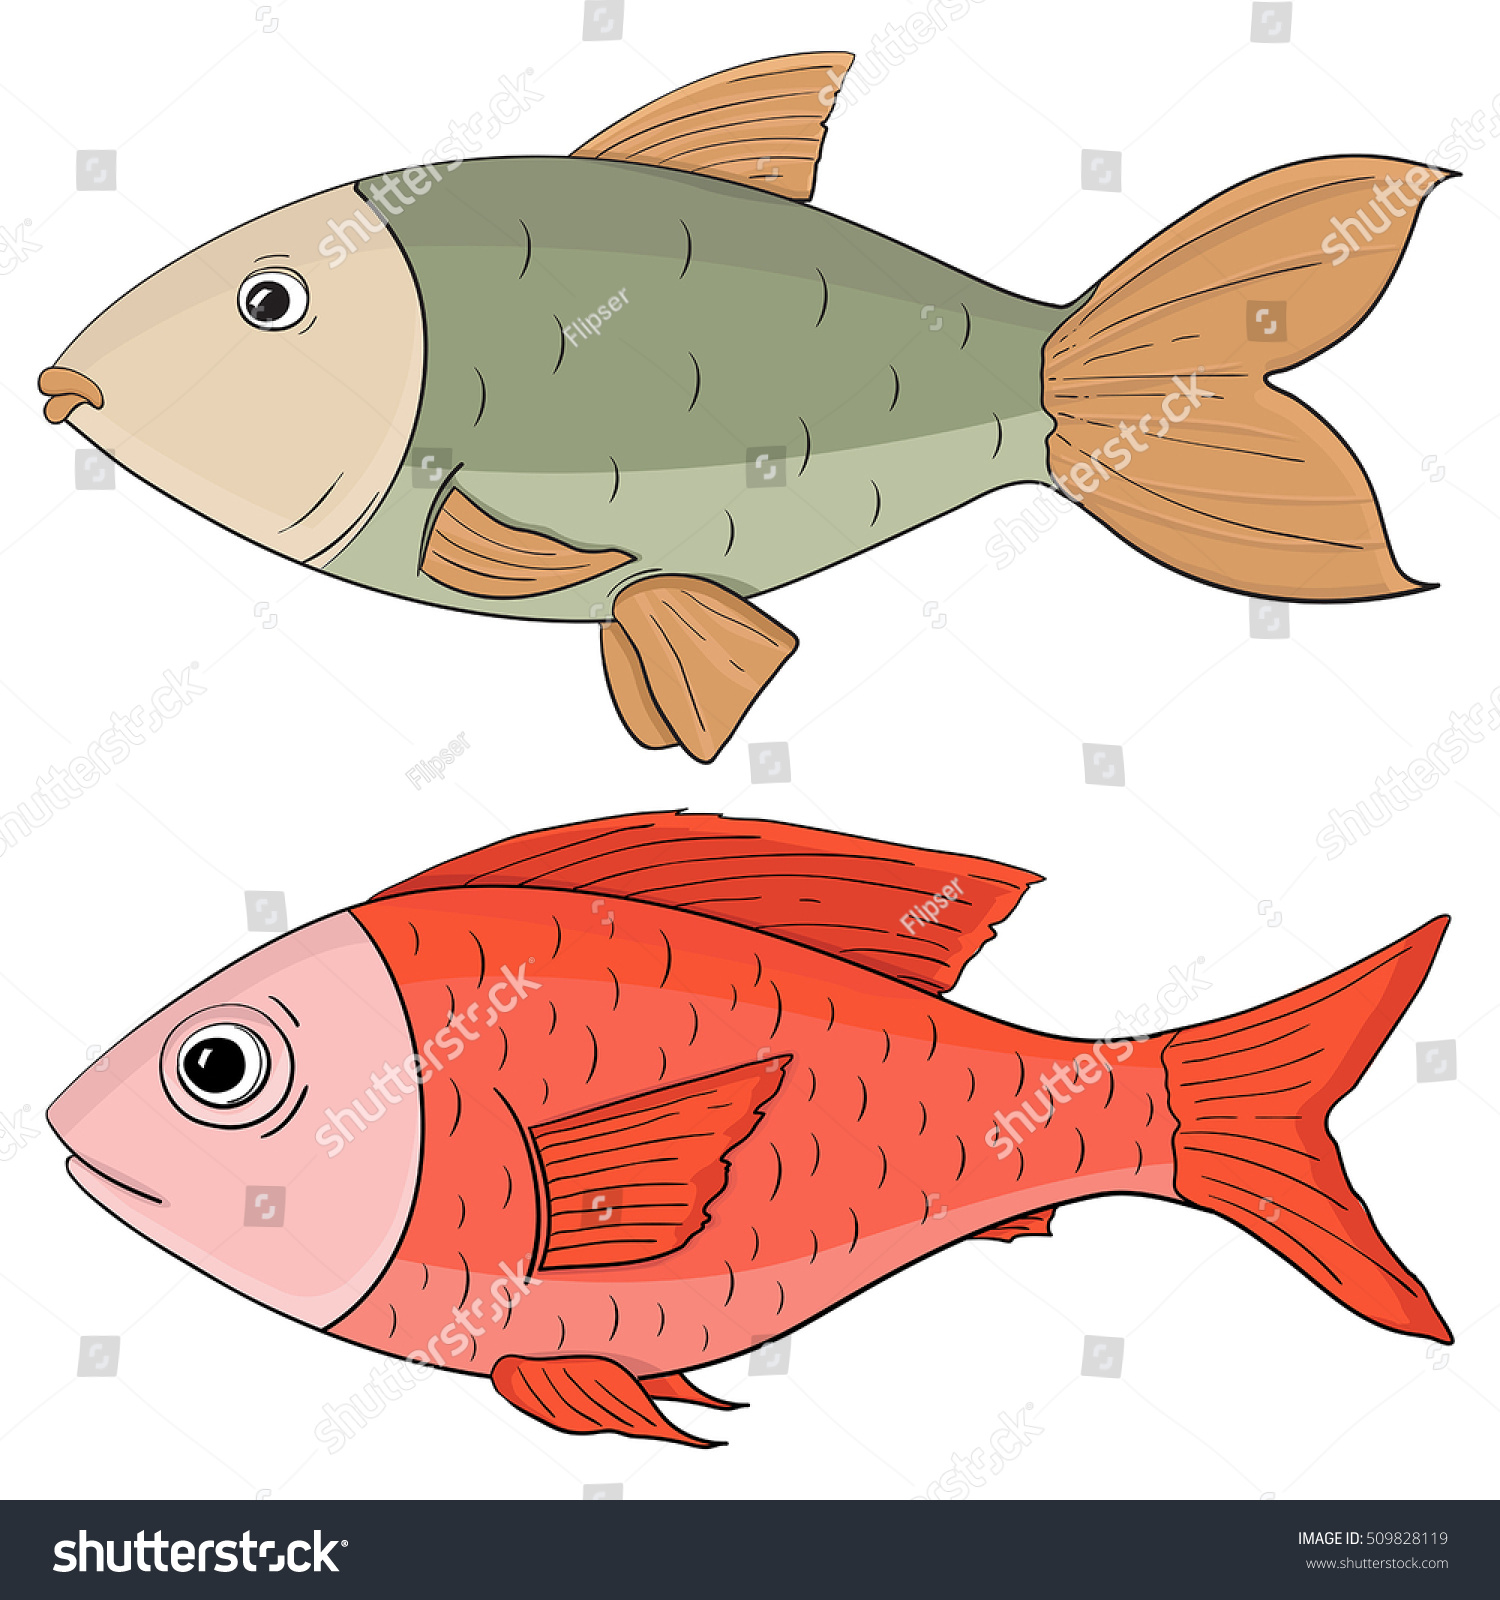 Fish Colored Hand Drawing Vector Illustration Stock Vector 509828119 ...